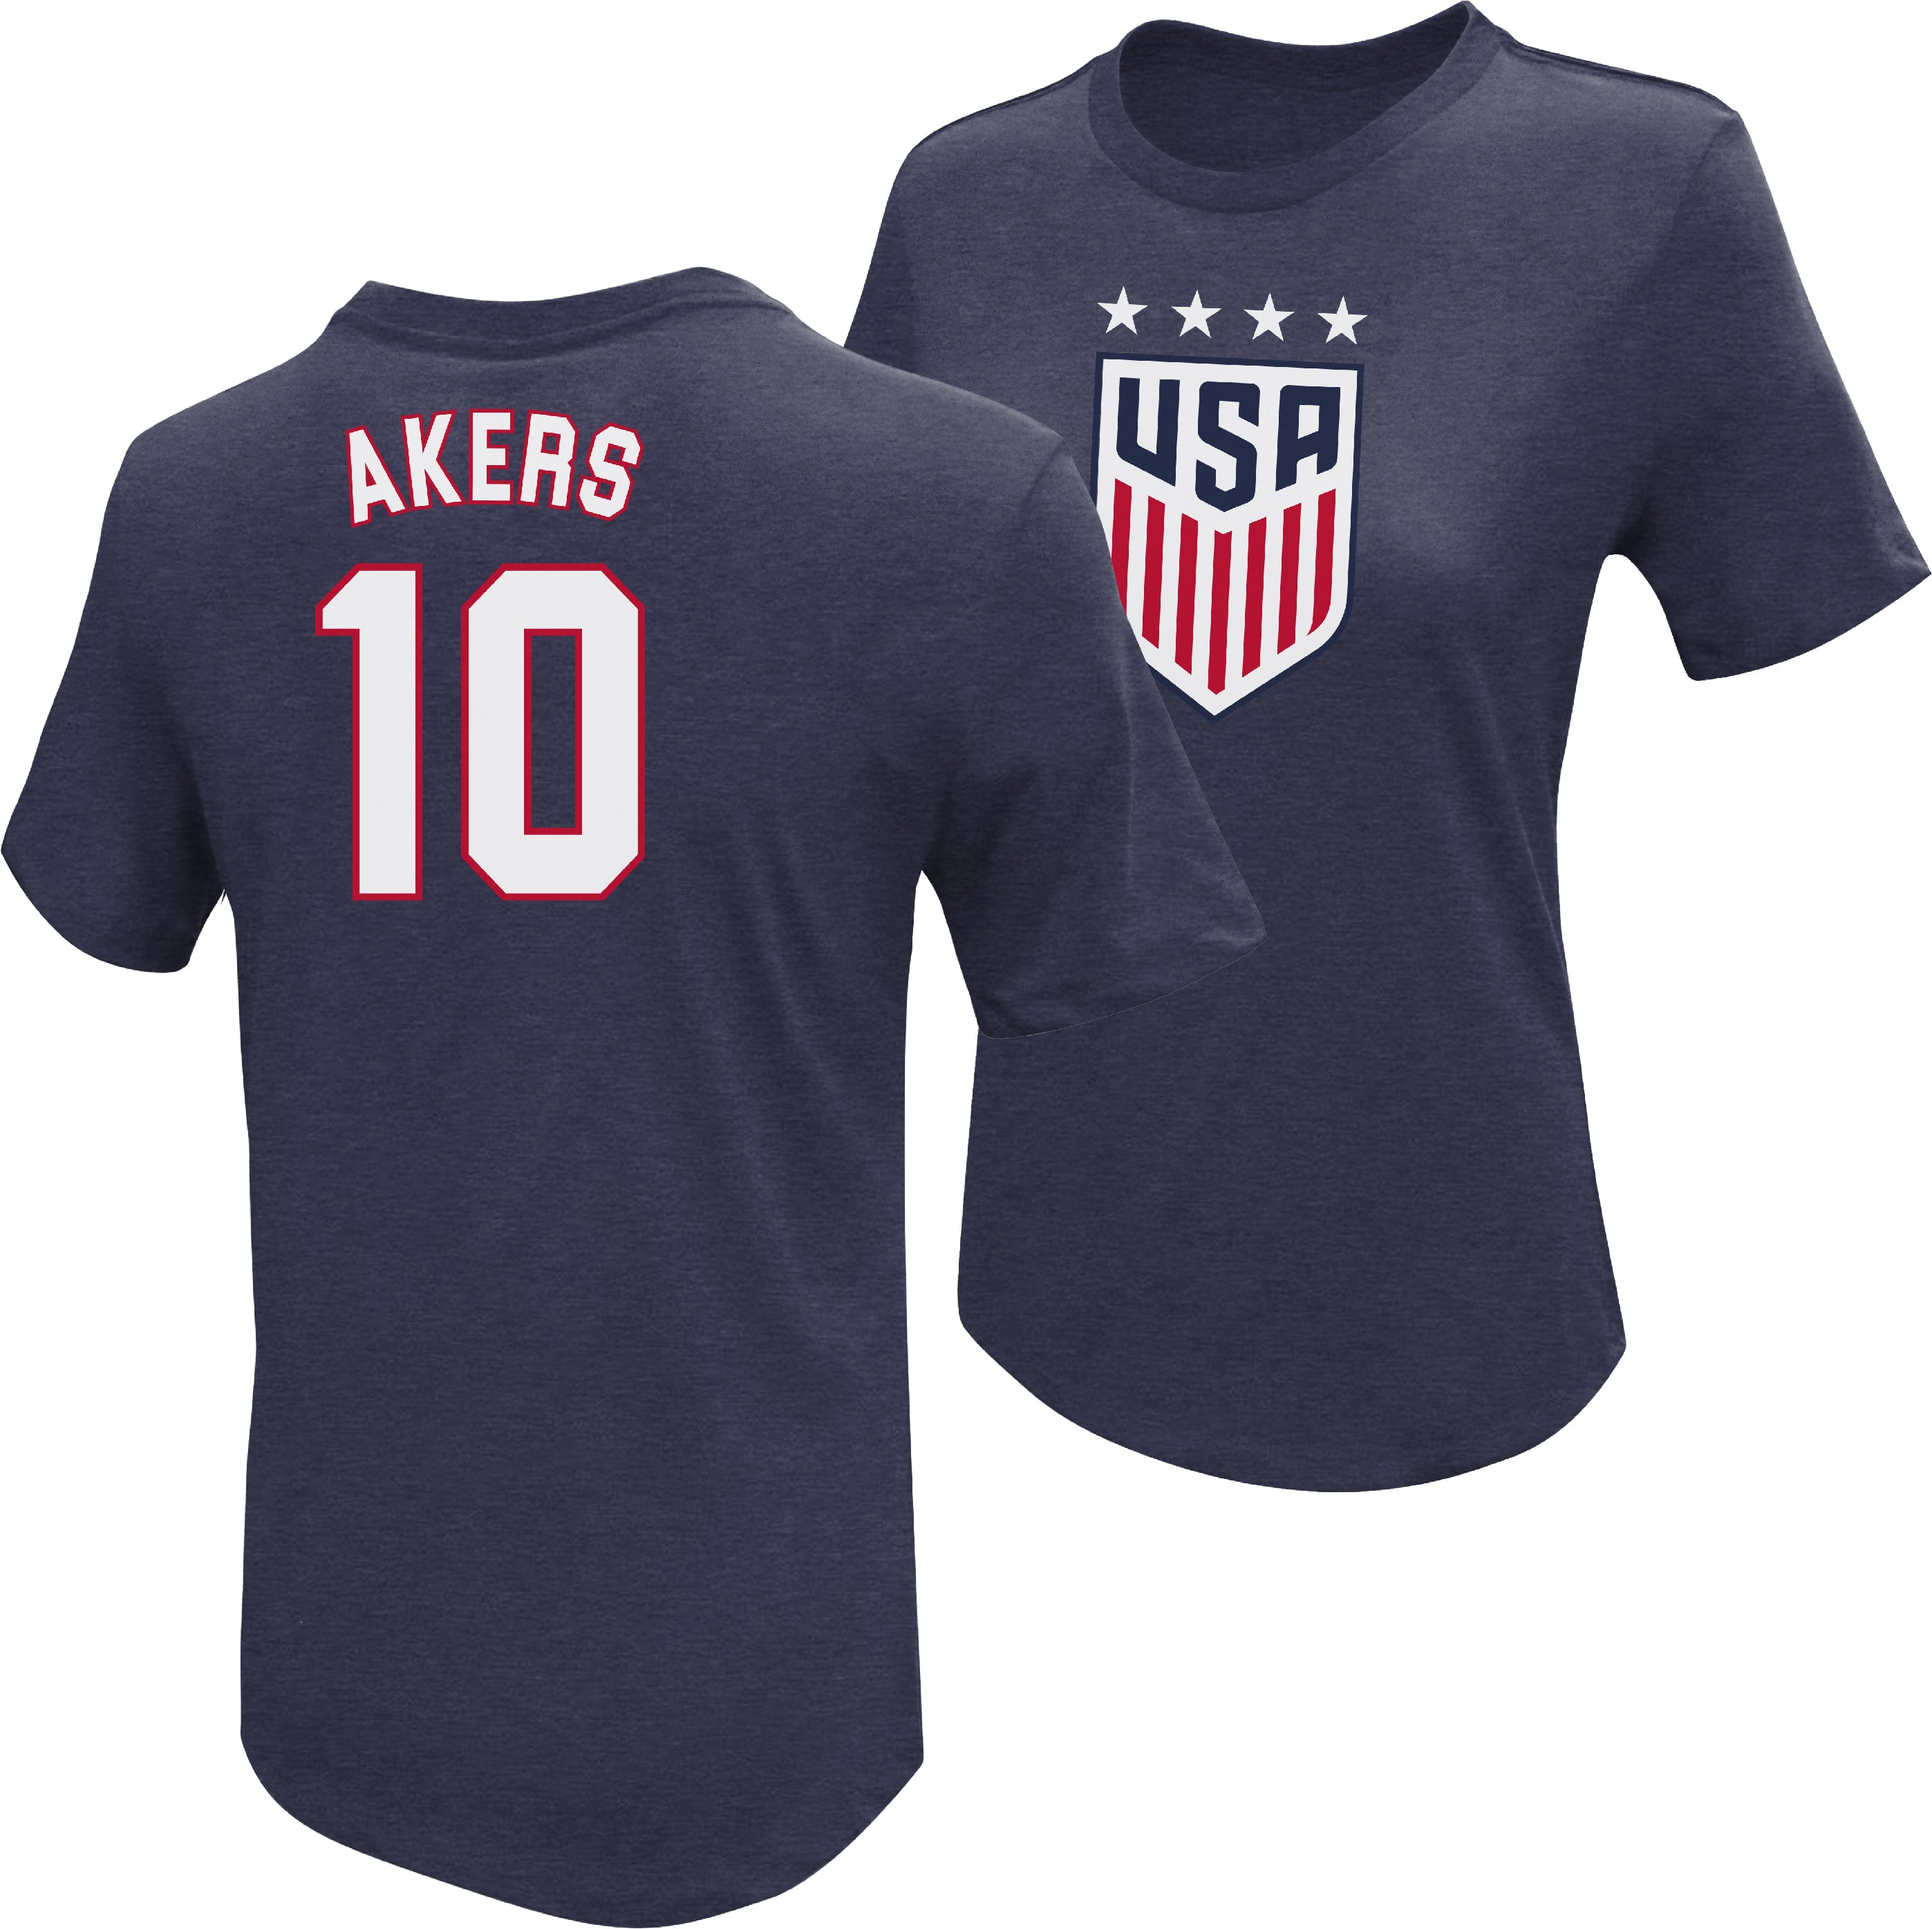 Michelle Akers 1999 USWNT 4 Star T-Shirt by Icon Sports